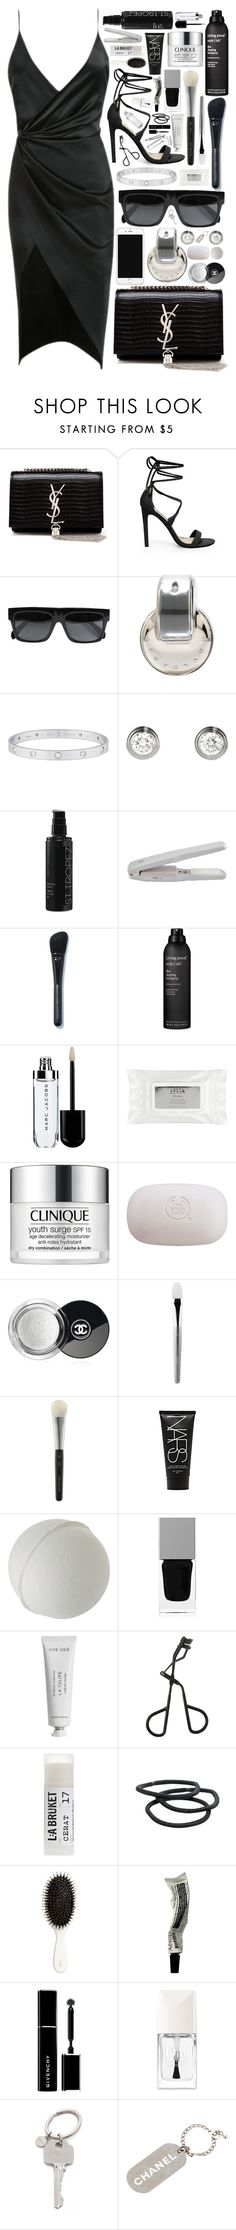 """""""we can get through anything"""" by dottt ❤ liked on Polyvore featuring Yves Saint Laurent, Steve Madden, CÉLINE, Bulgari, Cartier, St. Tropez, Living Proof, Stila, Clinique and The Body Shop"""